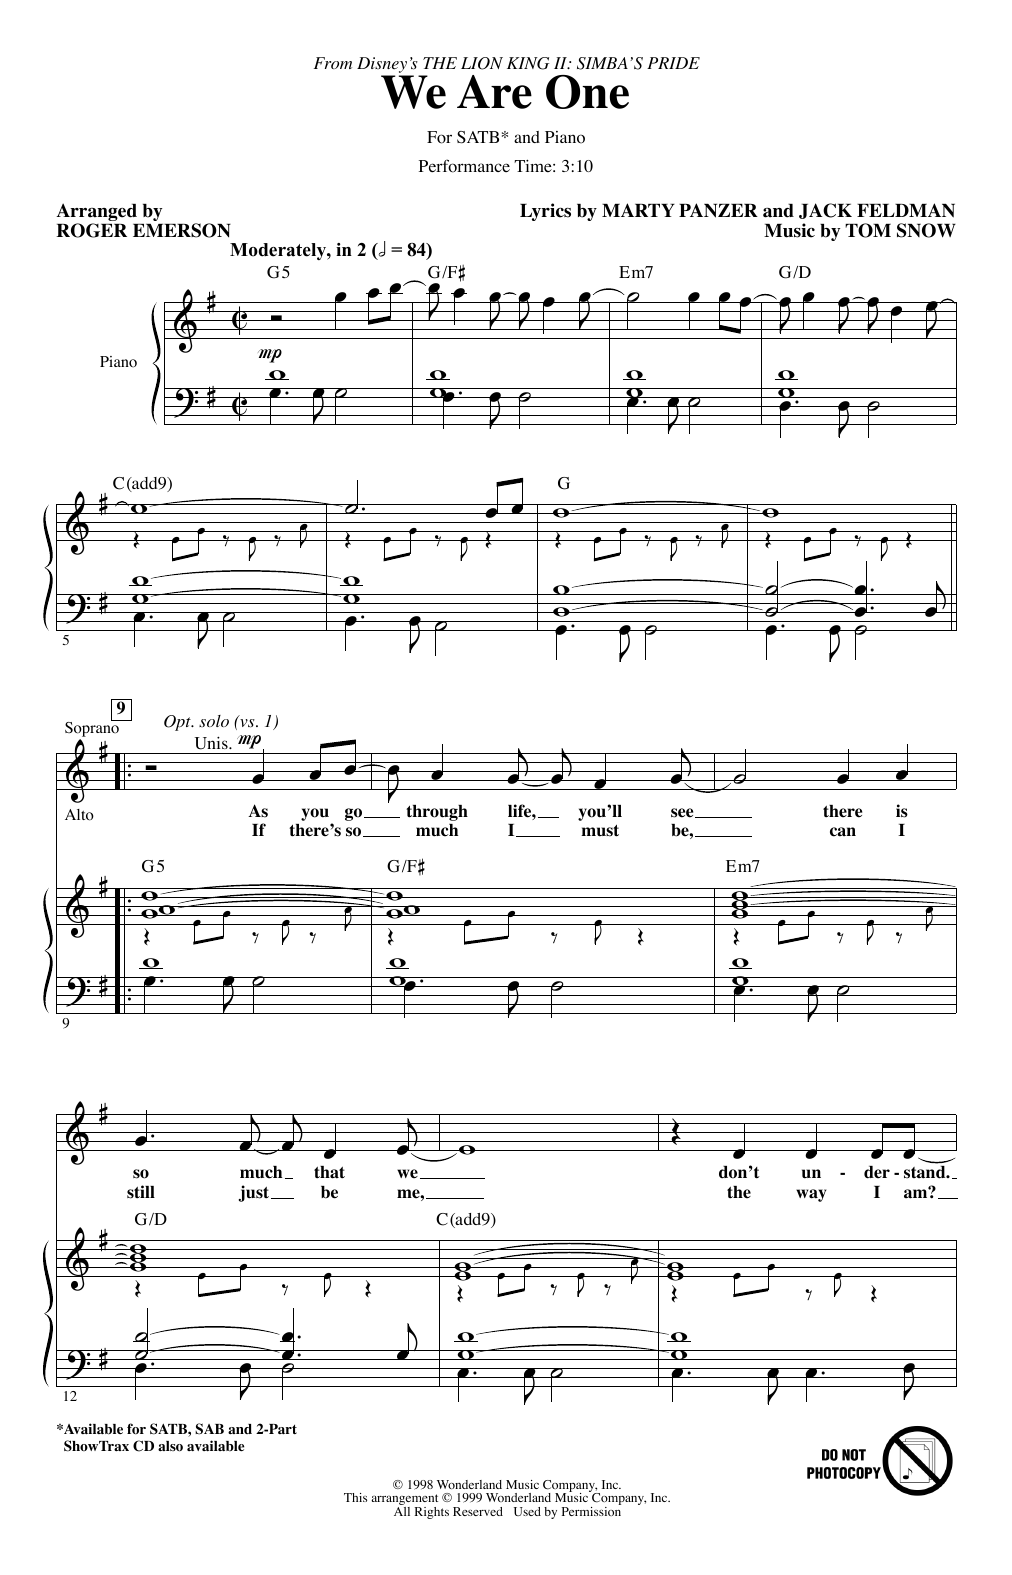 We Are One (from The Lion King II: Simba's Pride) (arr. Roger Emerson) (SATB Choir)